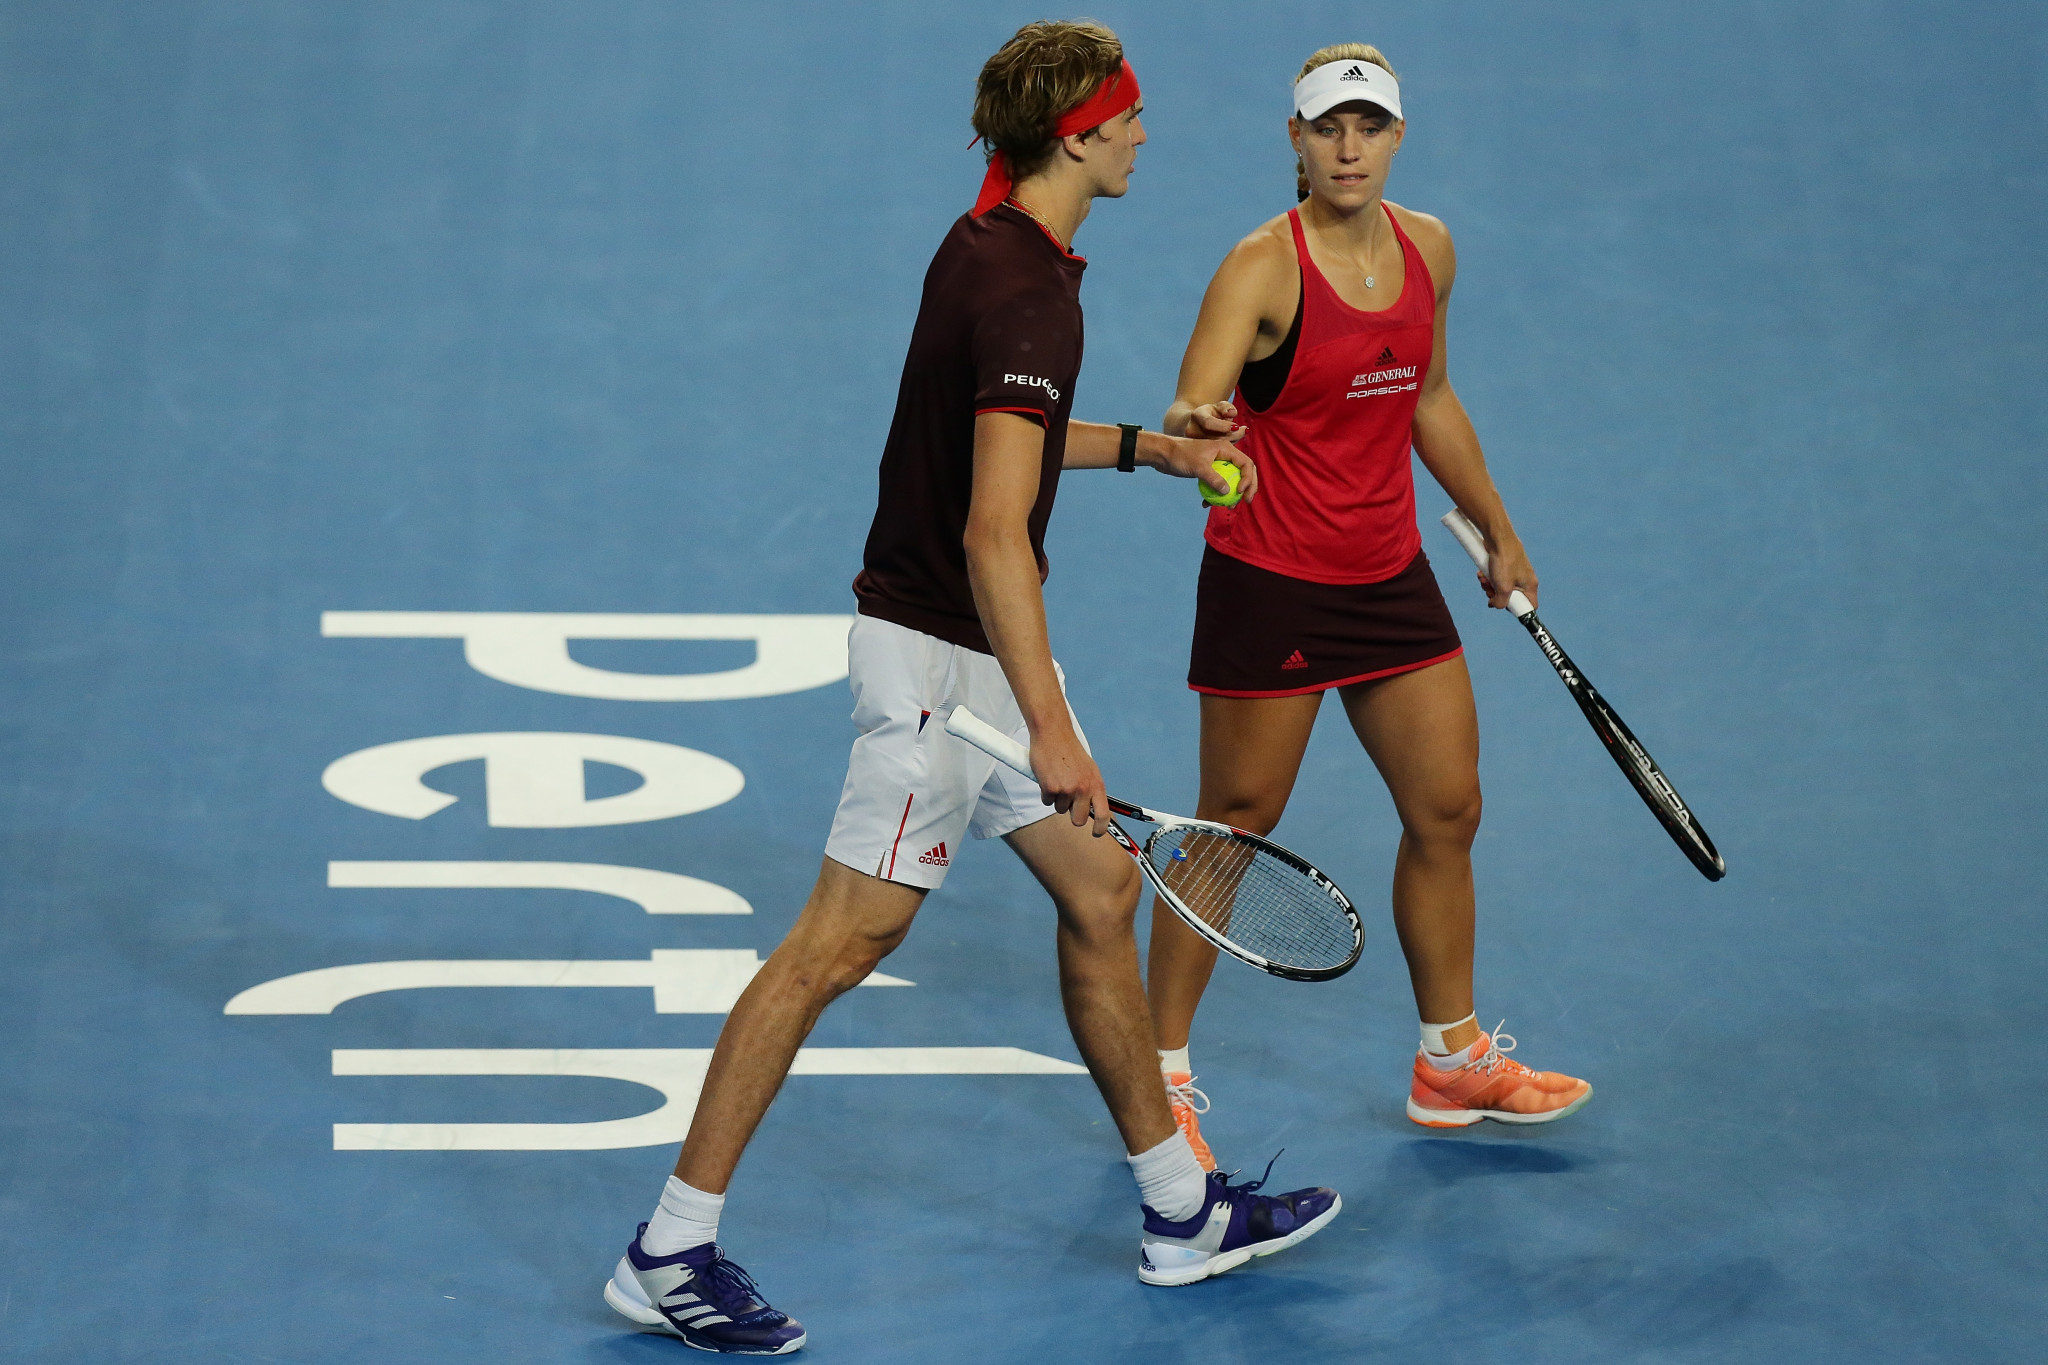 Zverev and Kerber will now face Federer and Bencic in tomorrow's Hopman Cup final ©Getty Images